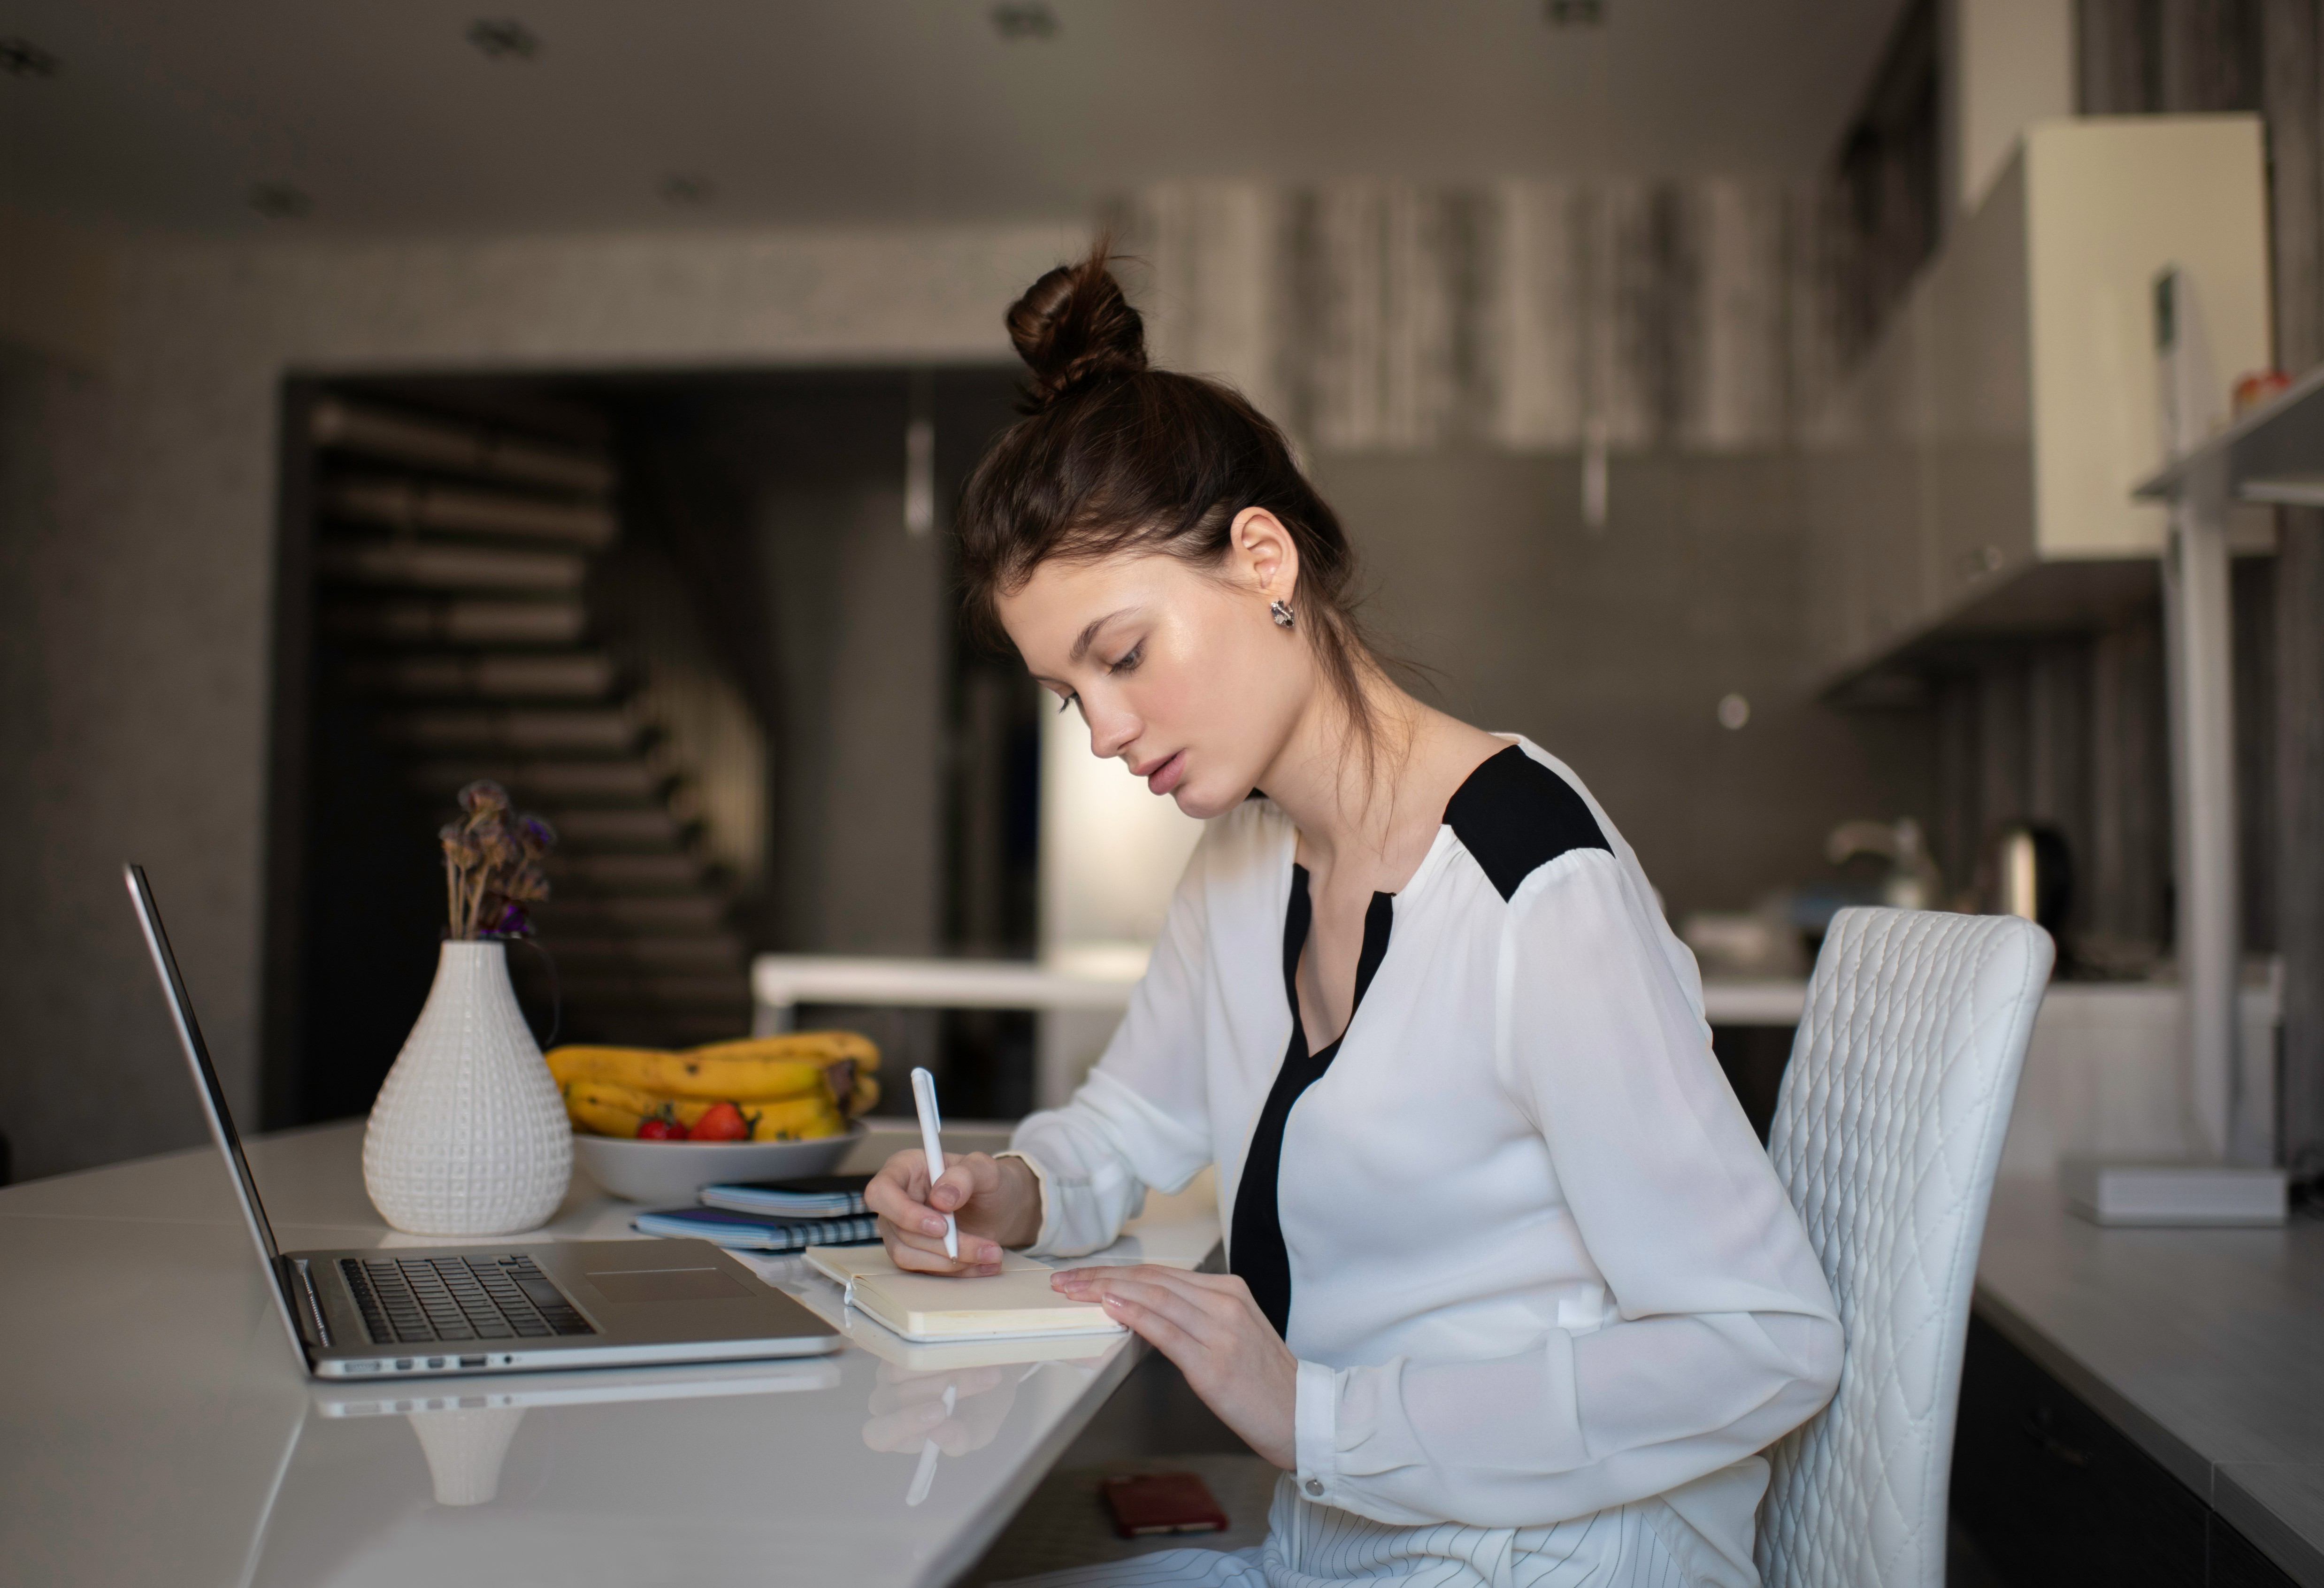 Women working from her studio office at home